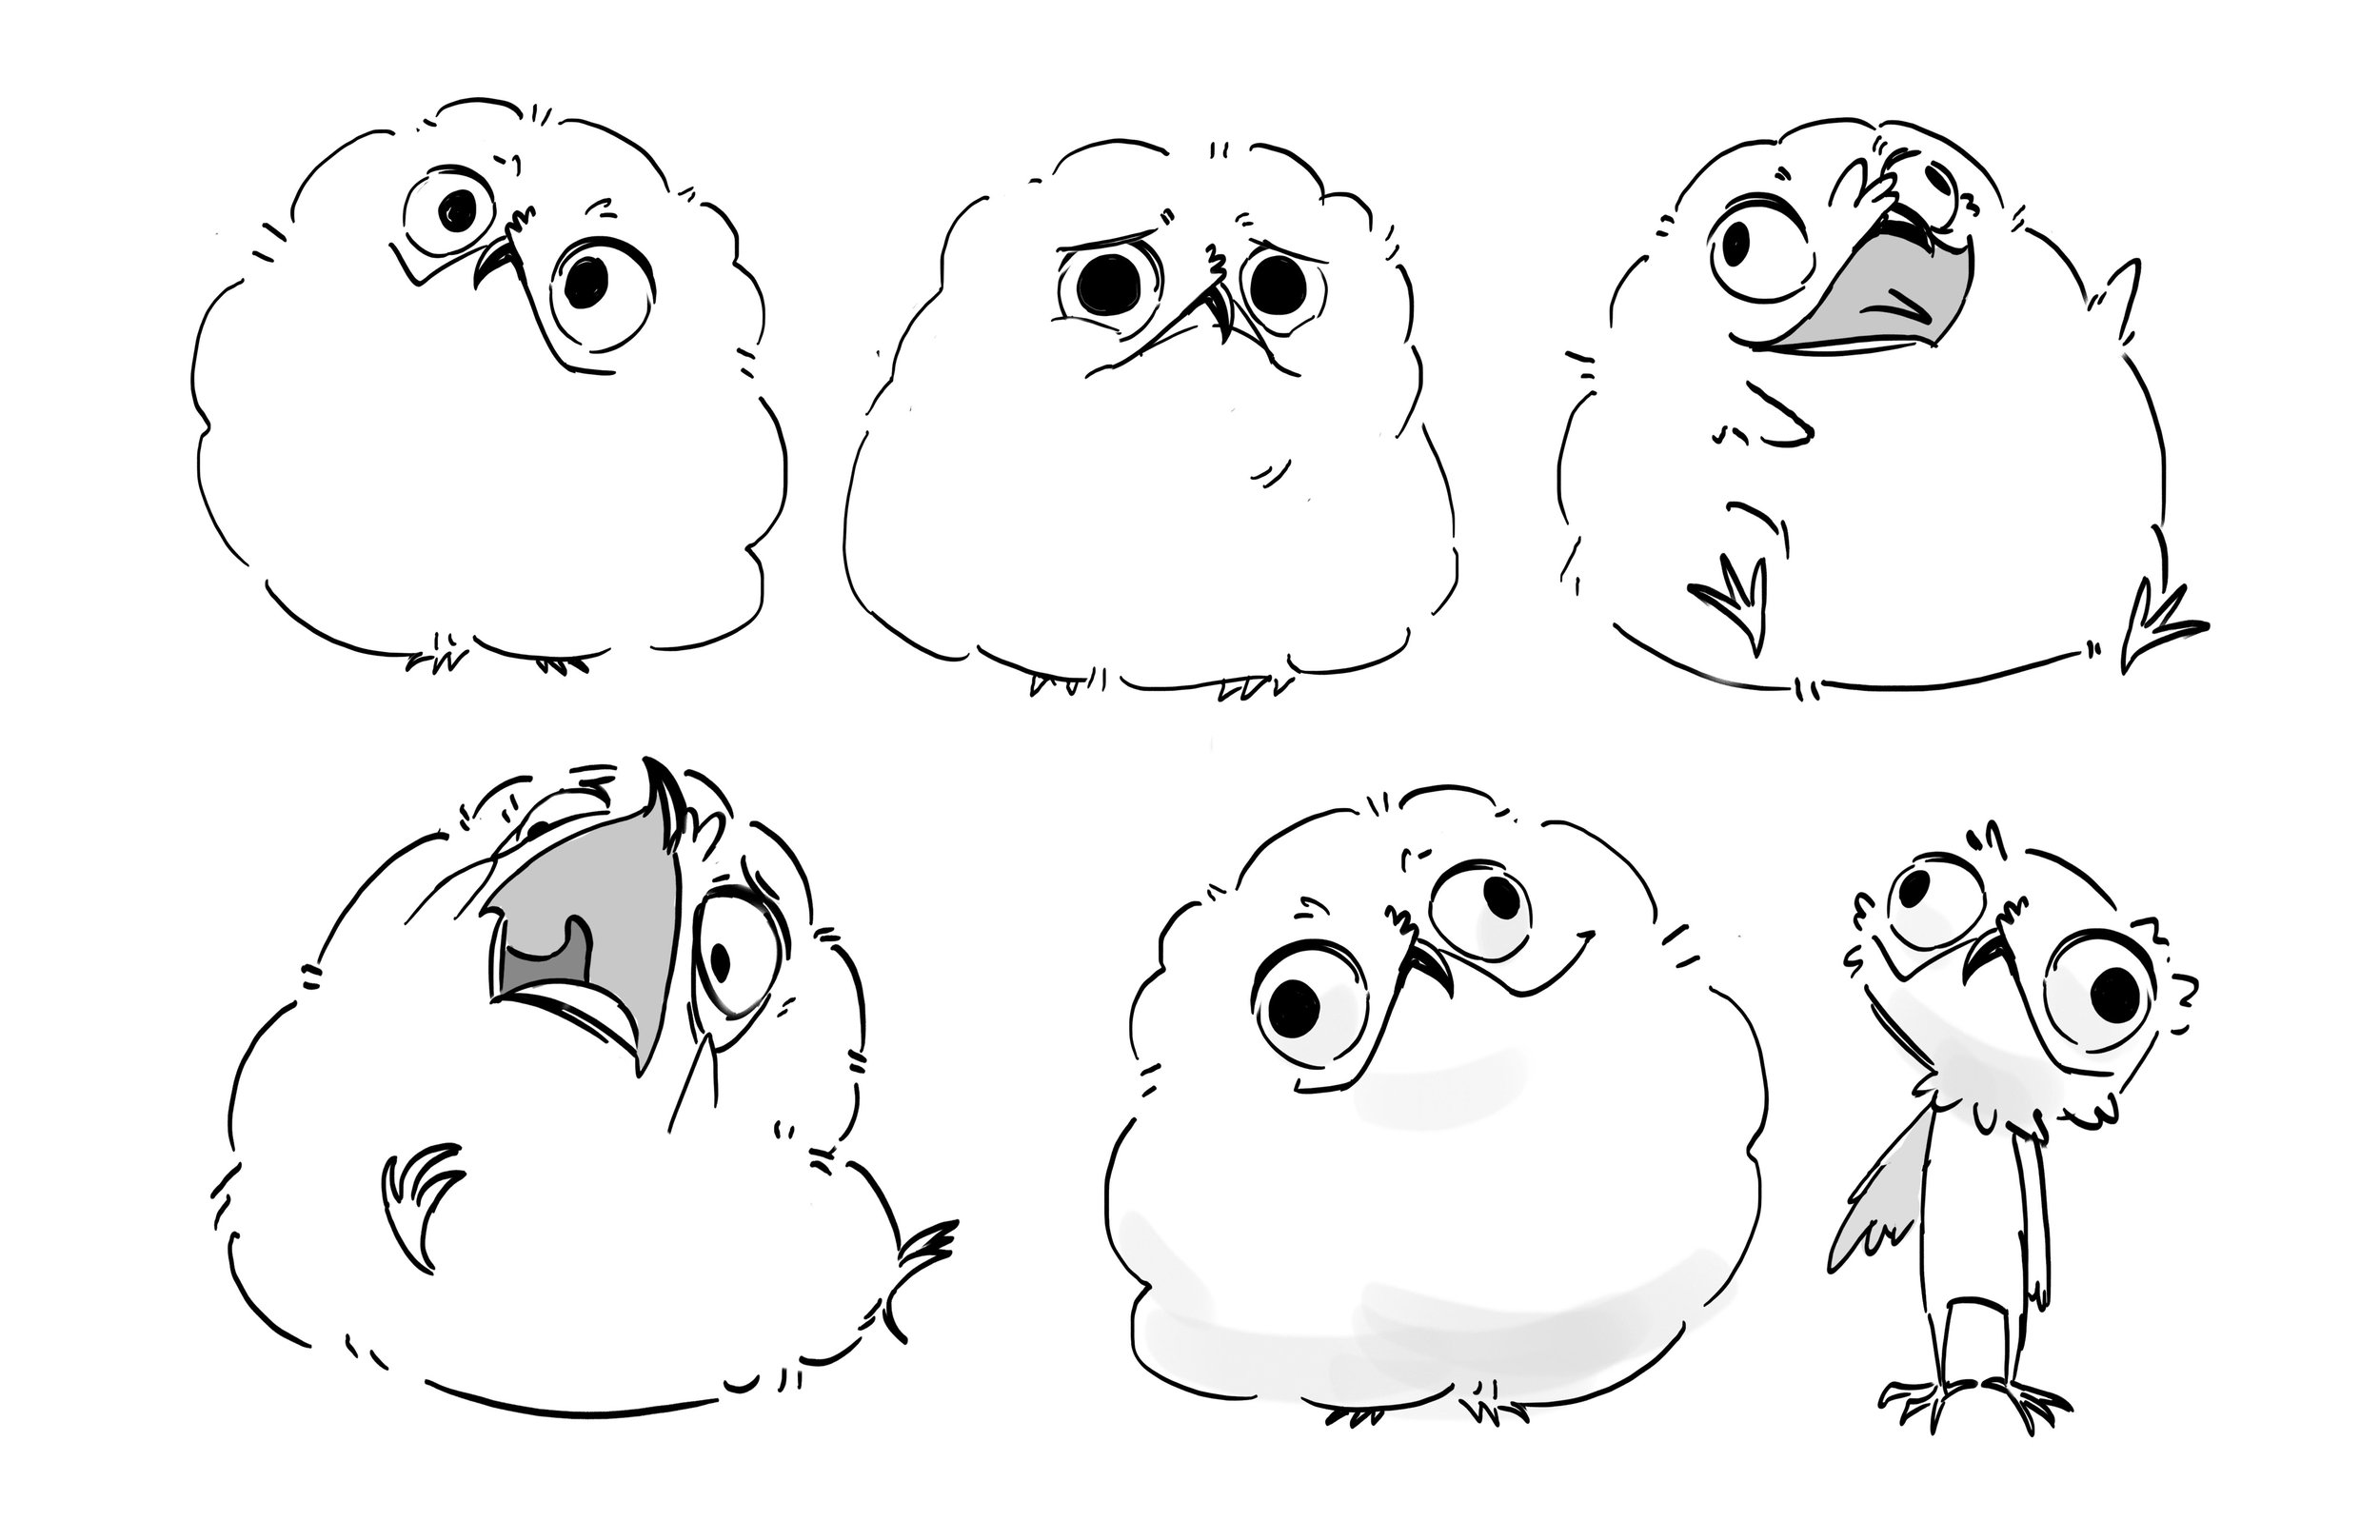 potoo bird floof.jpg